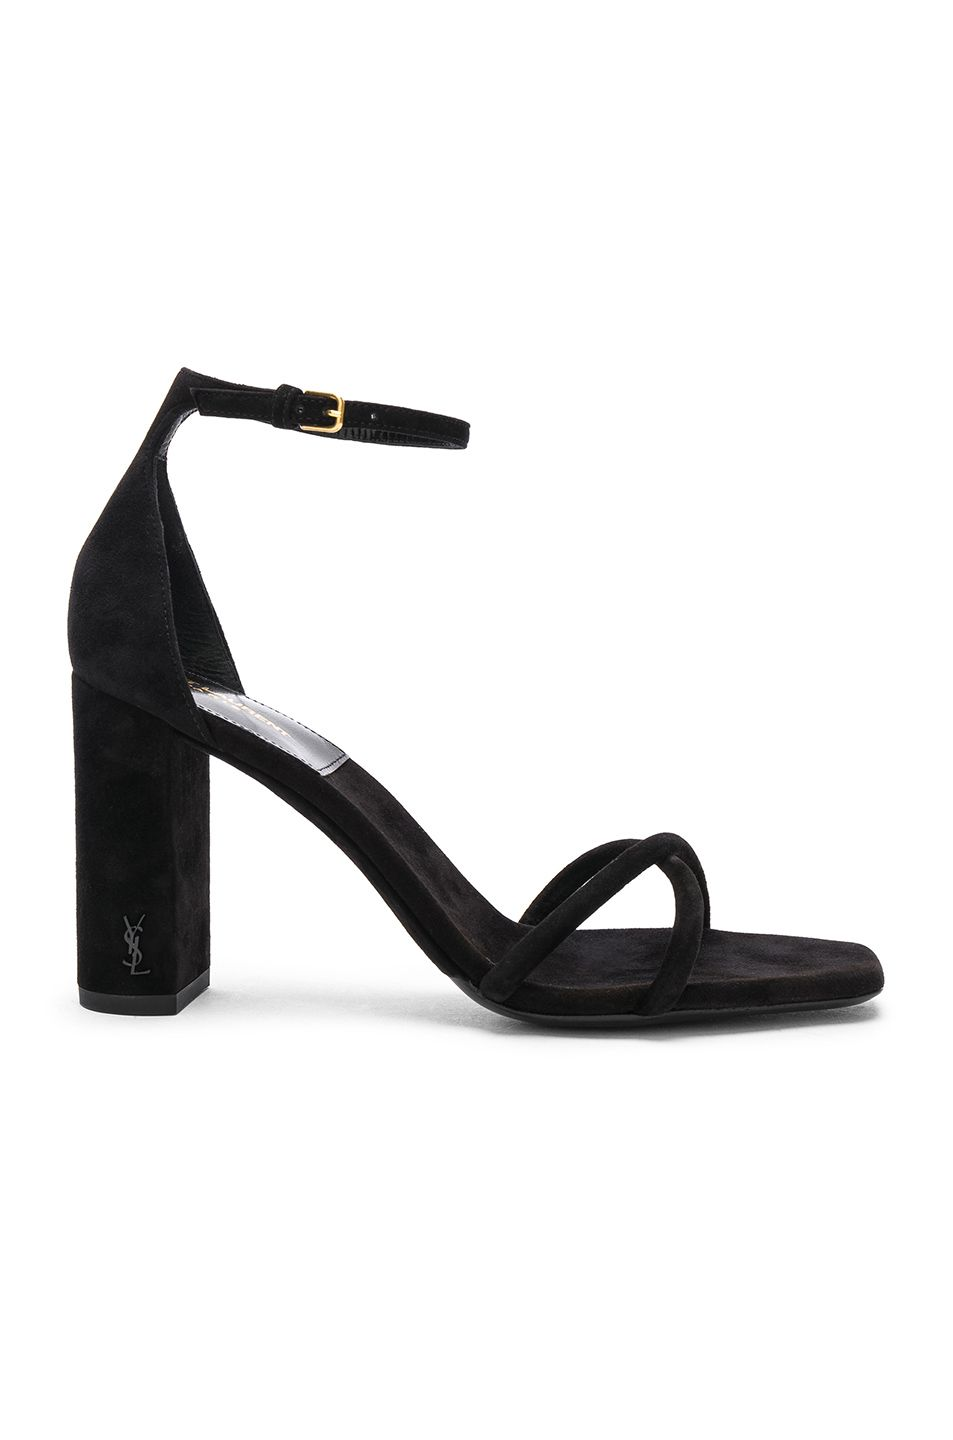 6aa922b8749 Image 1 of Saint Laurent Suede Pin Loulou Ankle Strap Sandals in Black